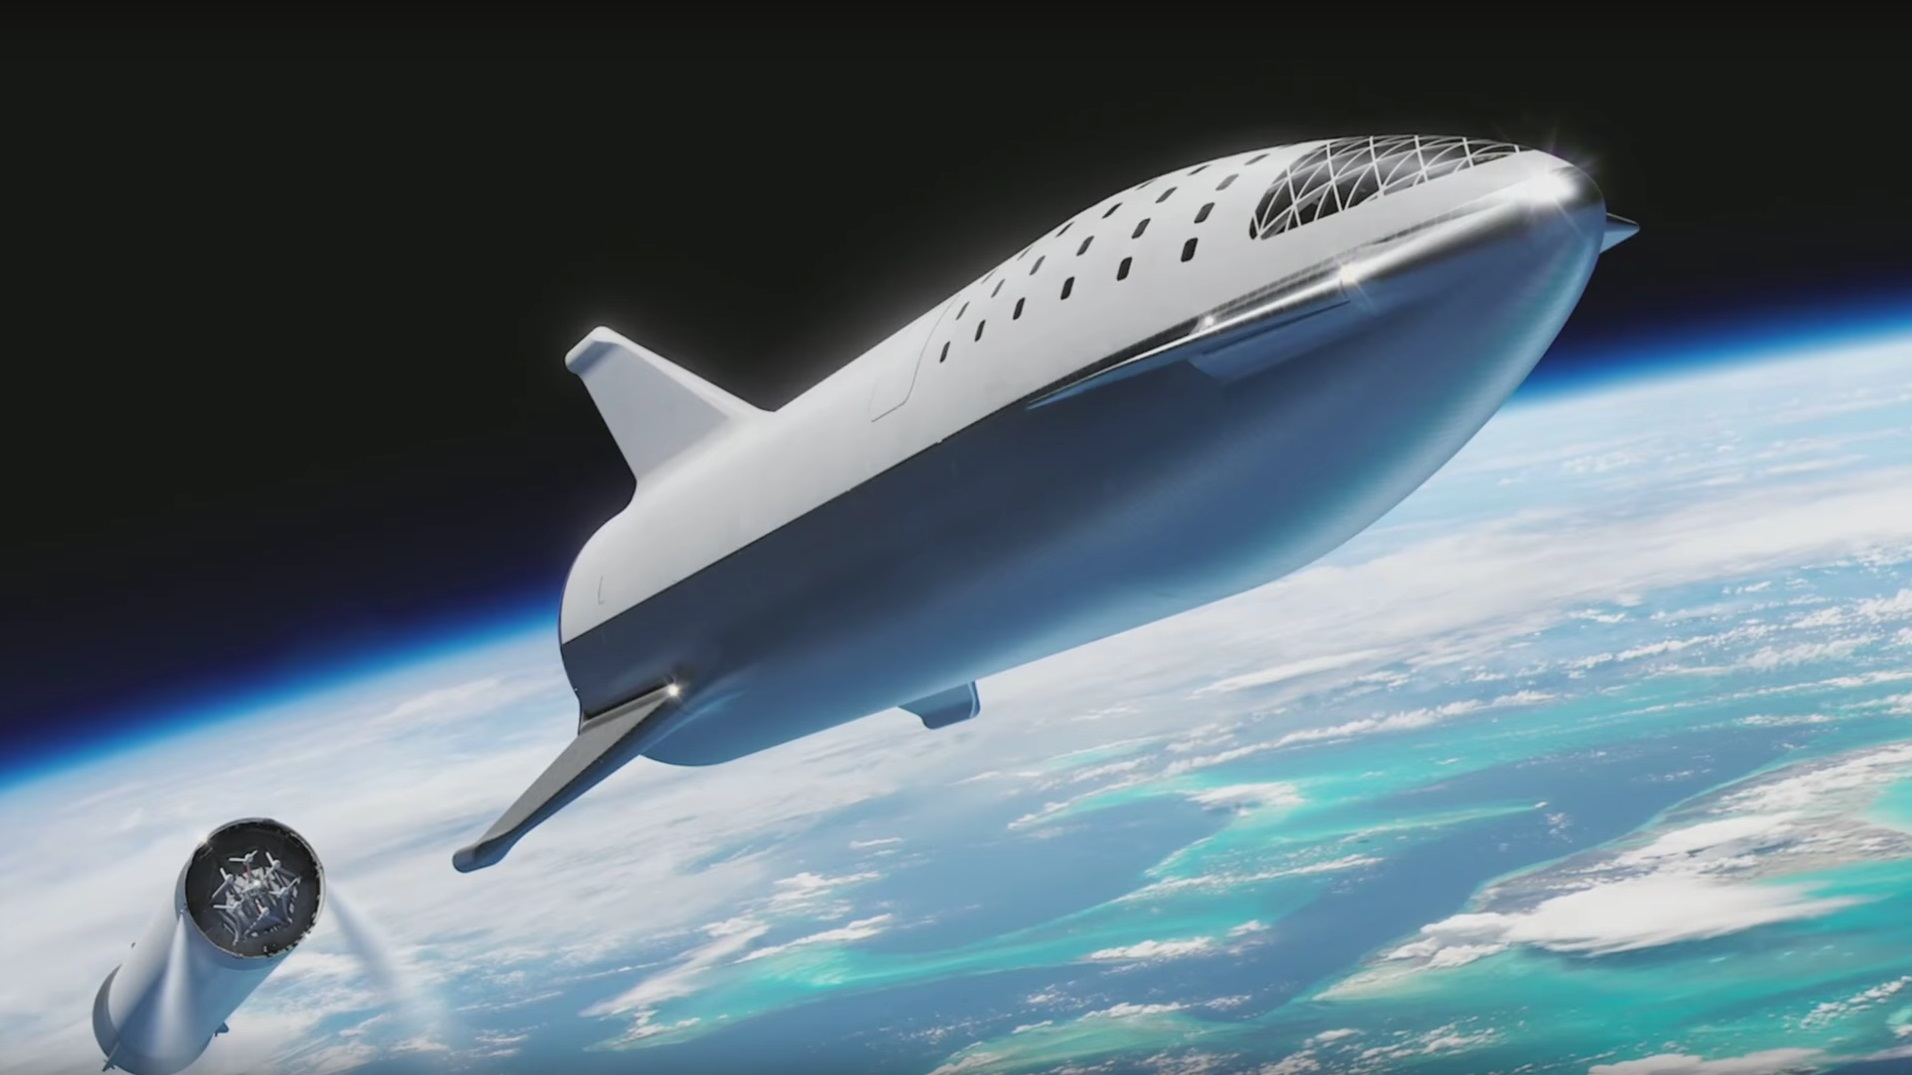 18 new details about Elon Musk's redesigned, moon-bound 'Big F*ing Rocket' spacex7